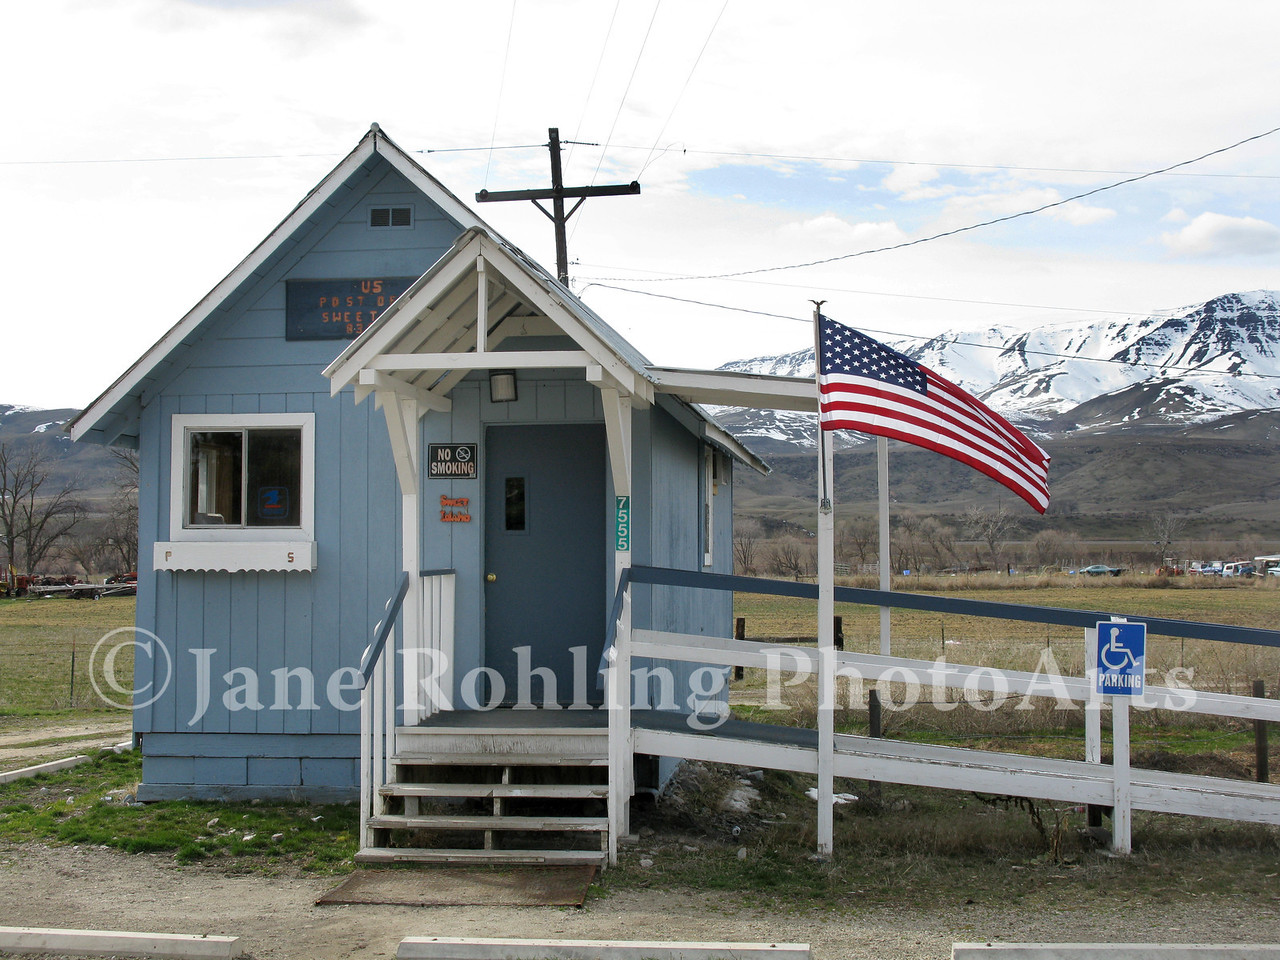 A tiny post office serves the rural town of Sweet, Idaho.